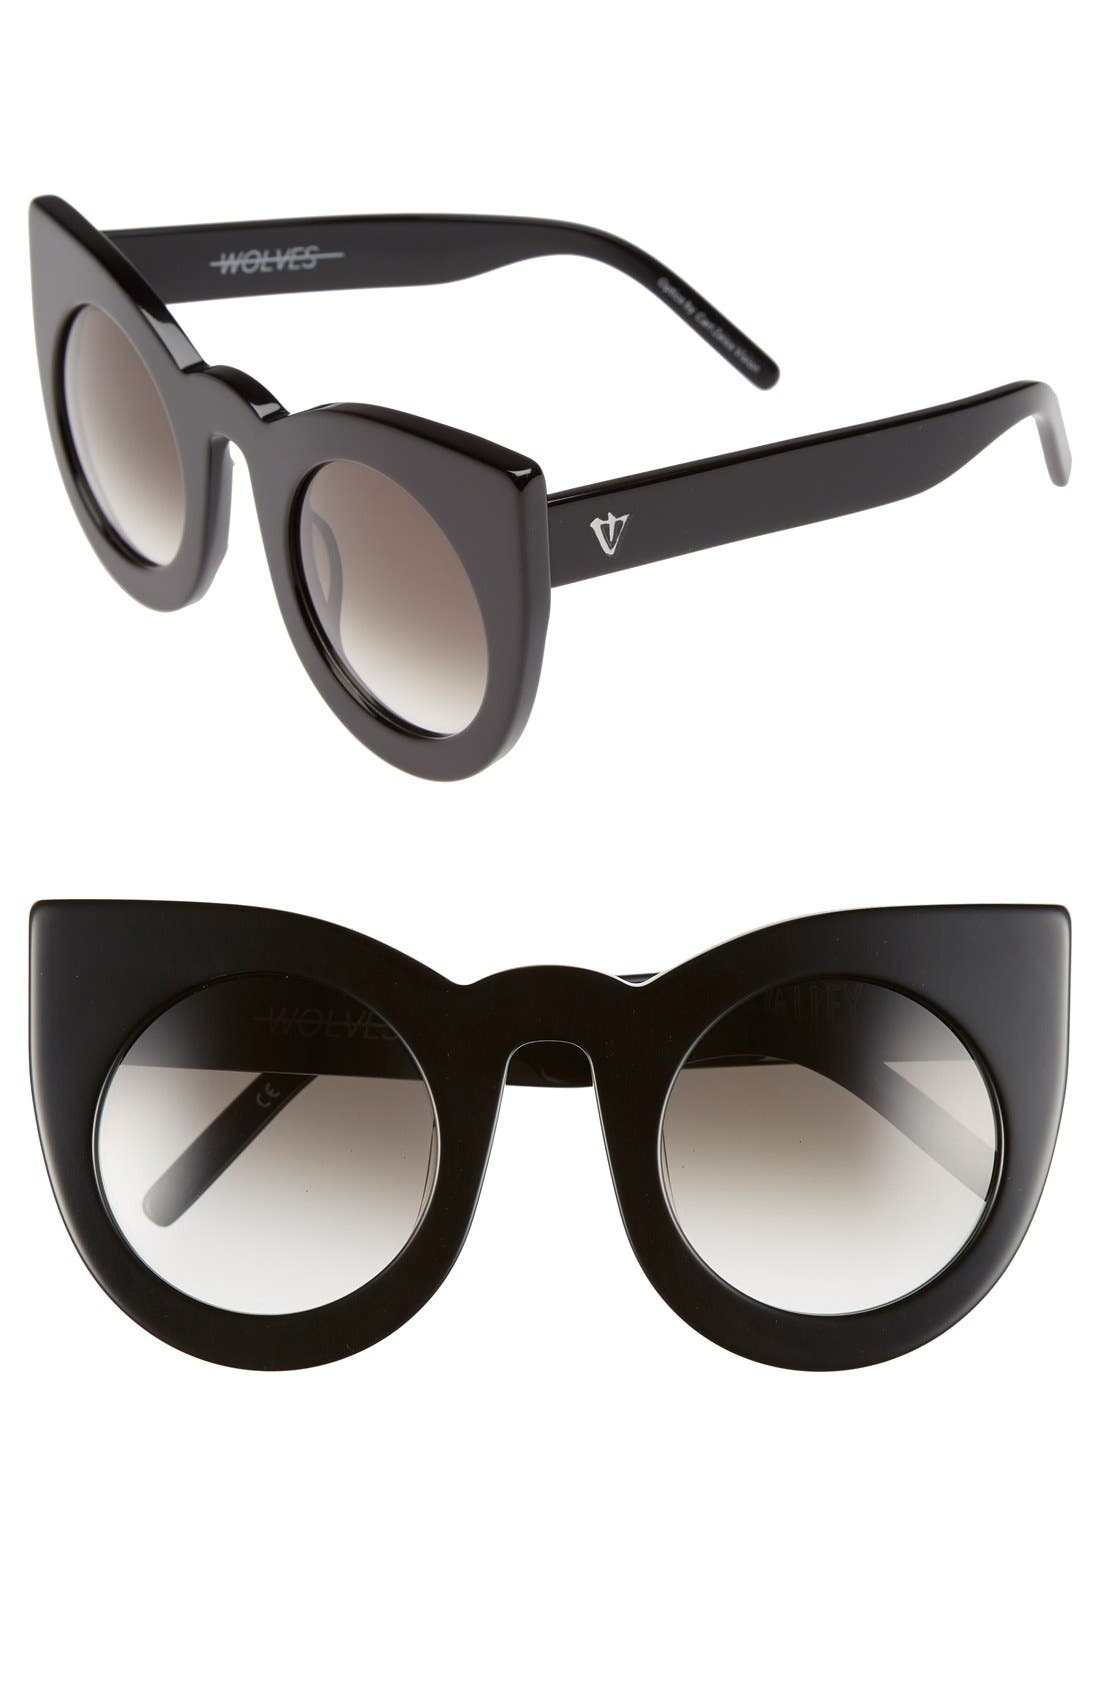 VALLEY 'Wolves' 52mm Sunglasses, Main, color, 001